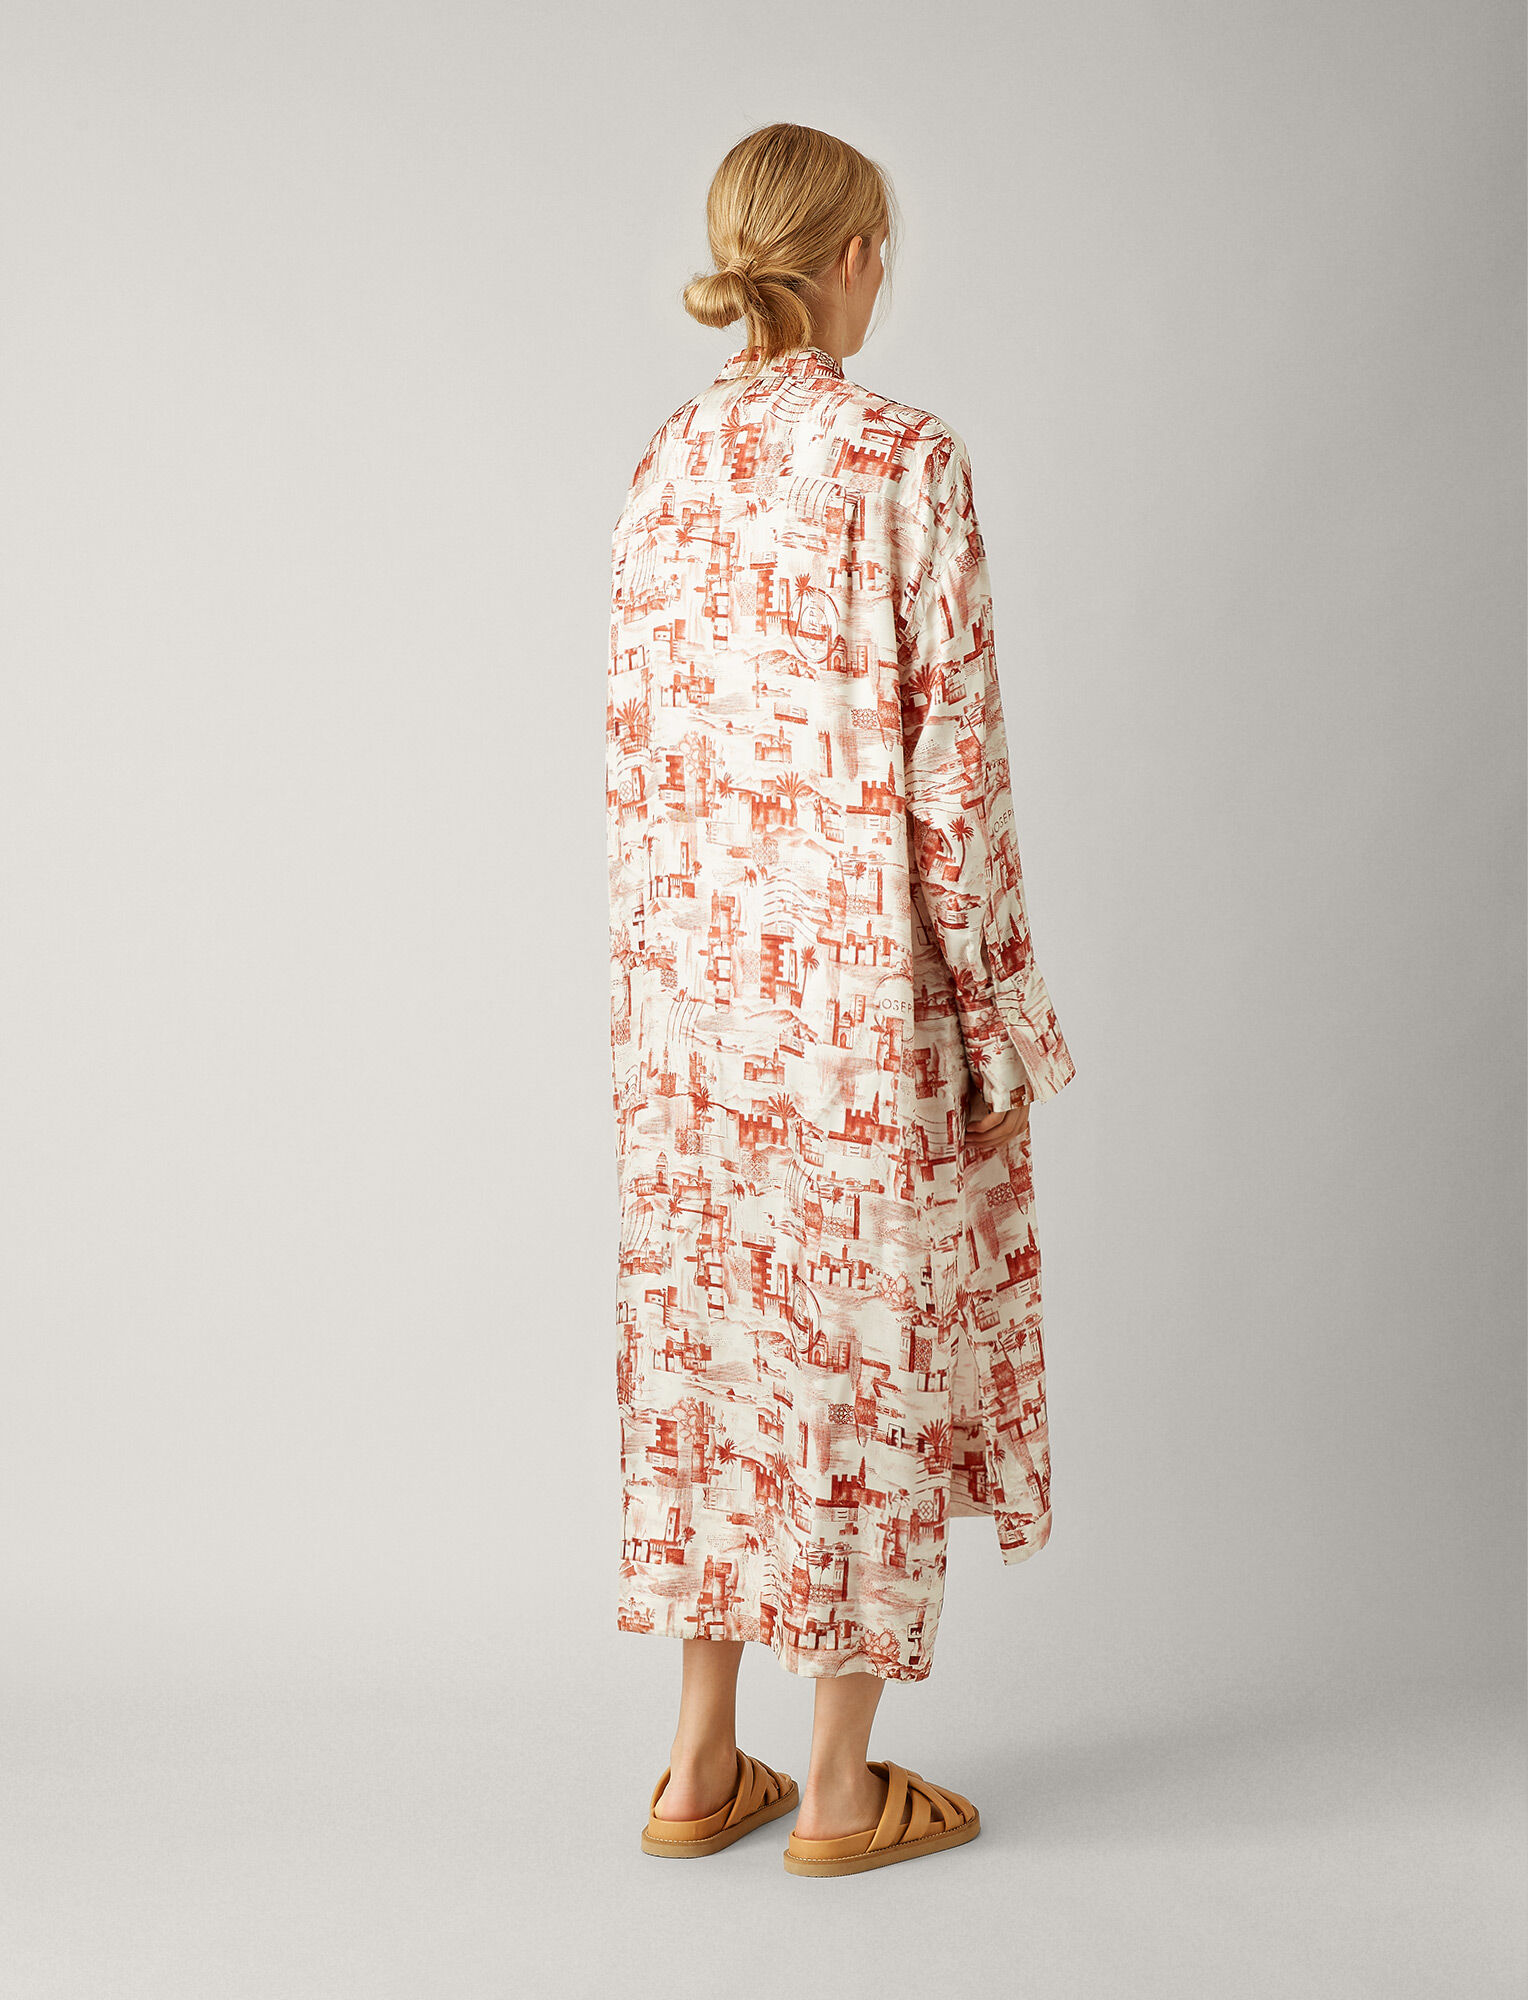 Joseph, Gaya Small Stamp Print Dress, in RUST